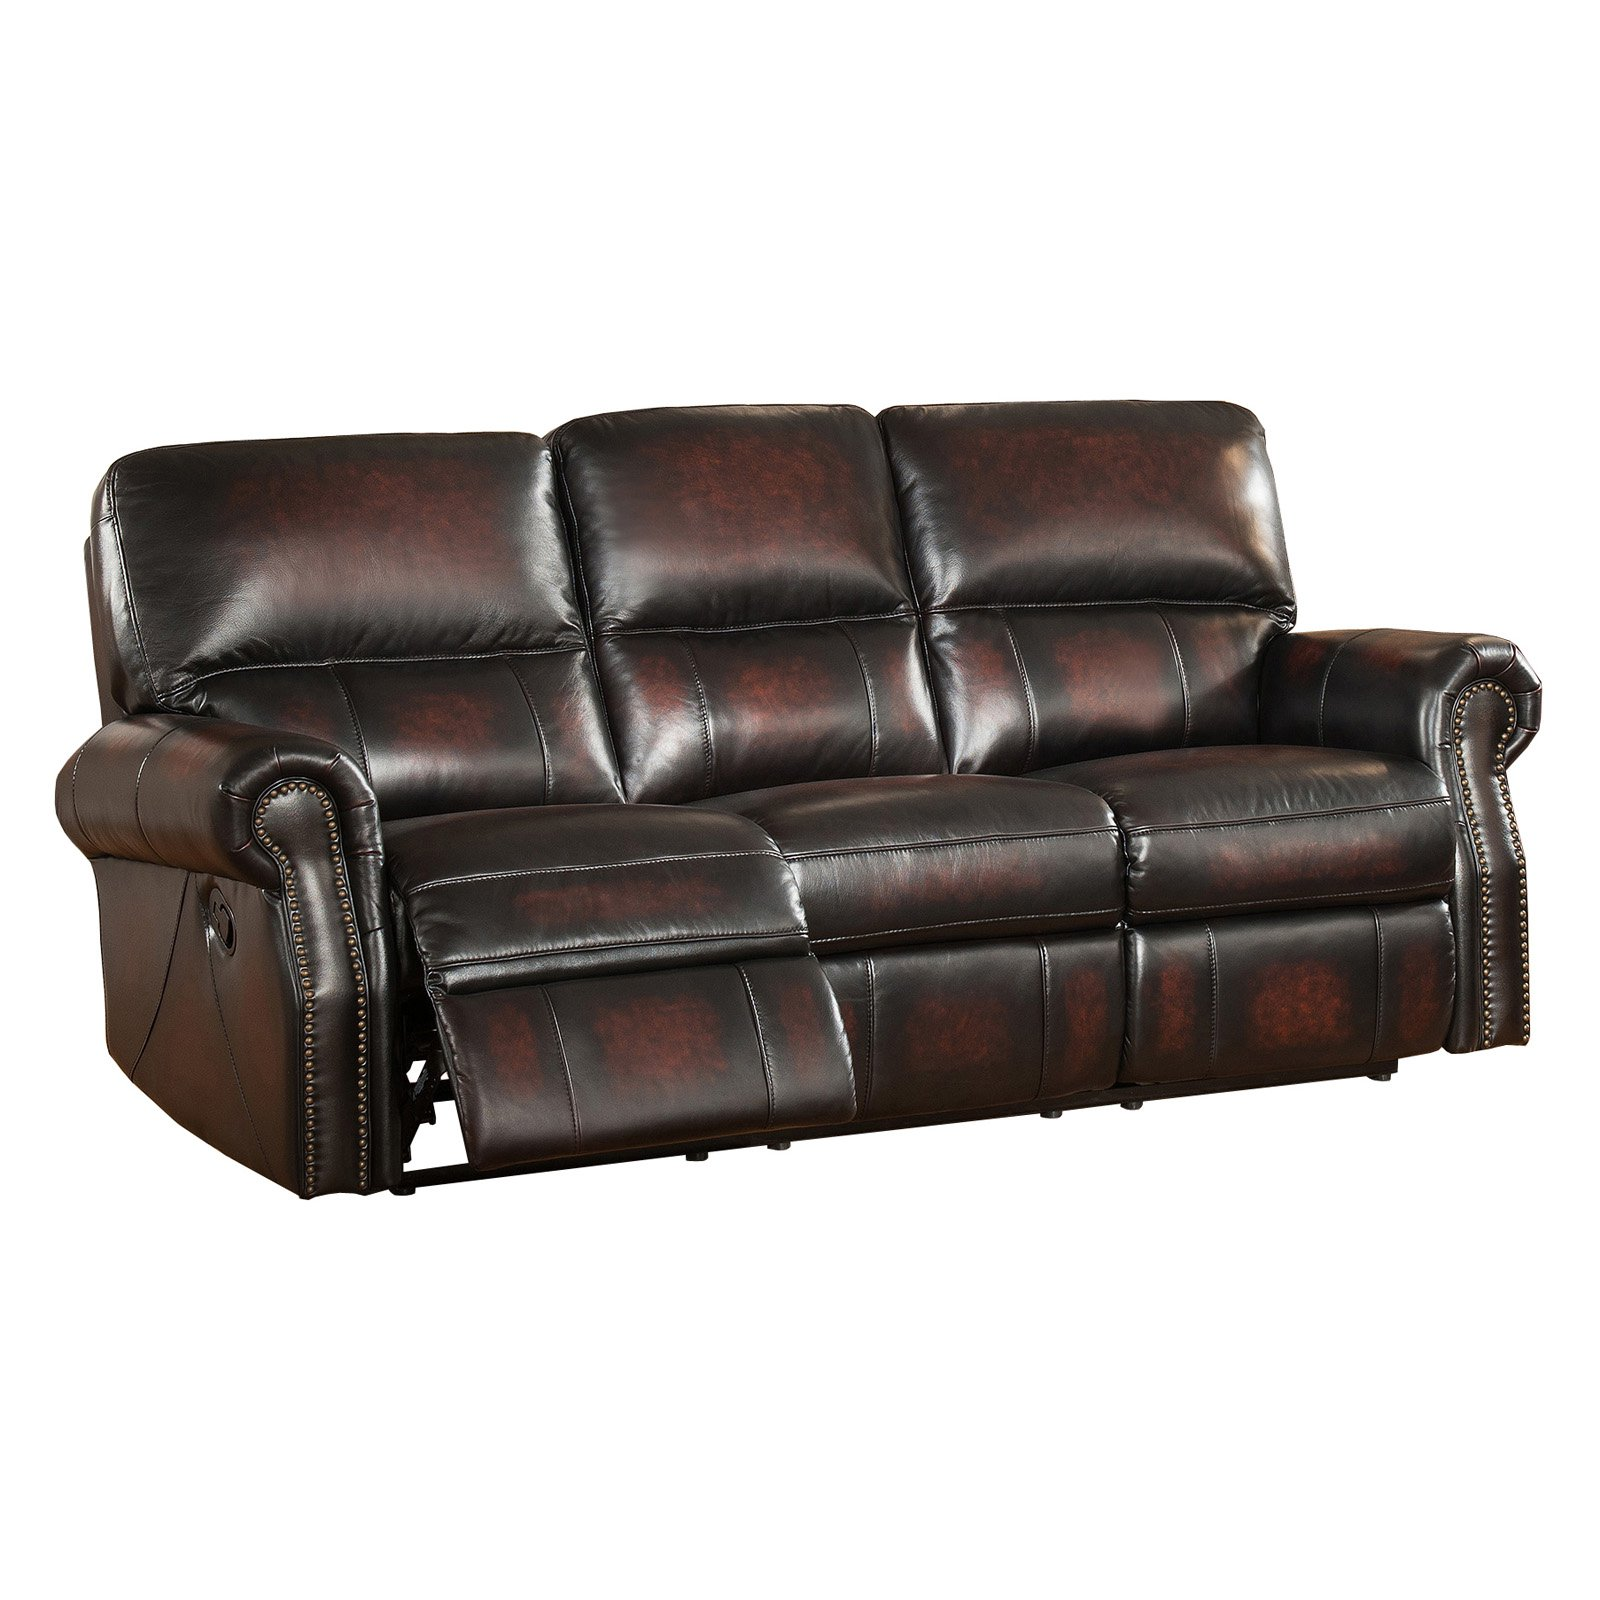 Amax Leather Brooklyn Top Grain Leather Reclining Sofa